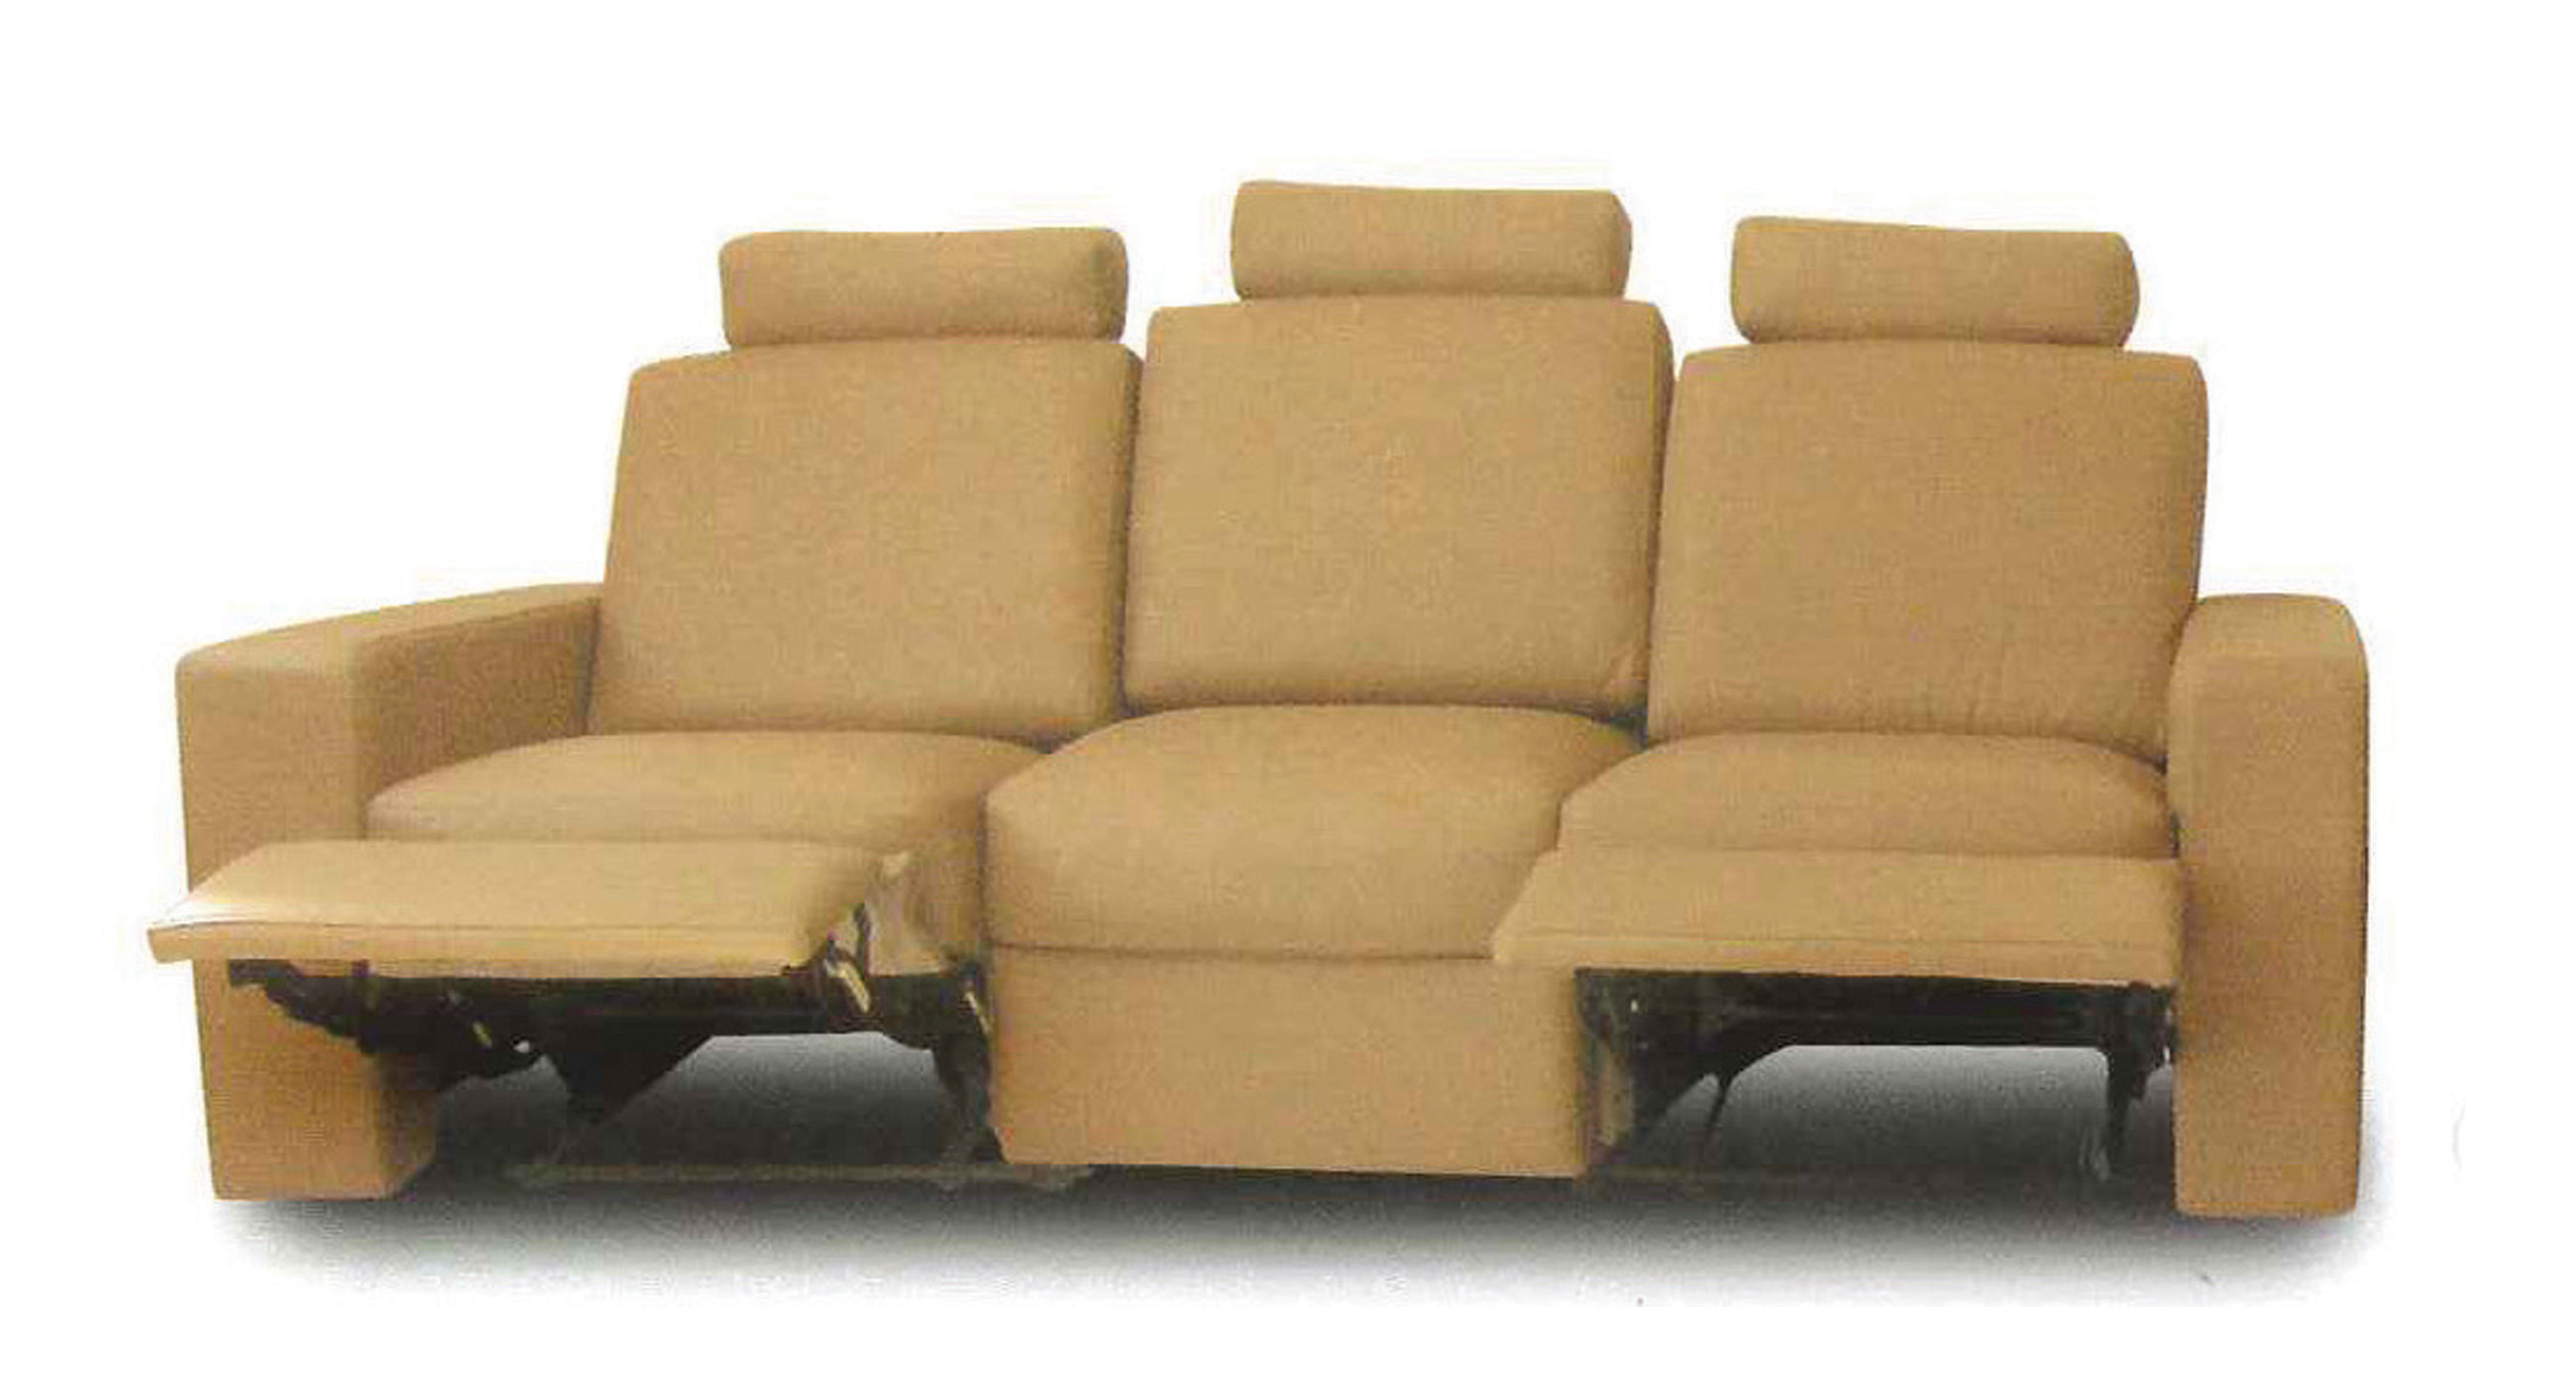 Lawson Reclining Sofa and Chairs